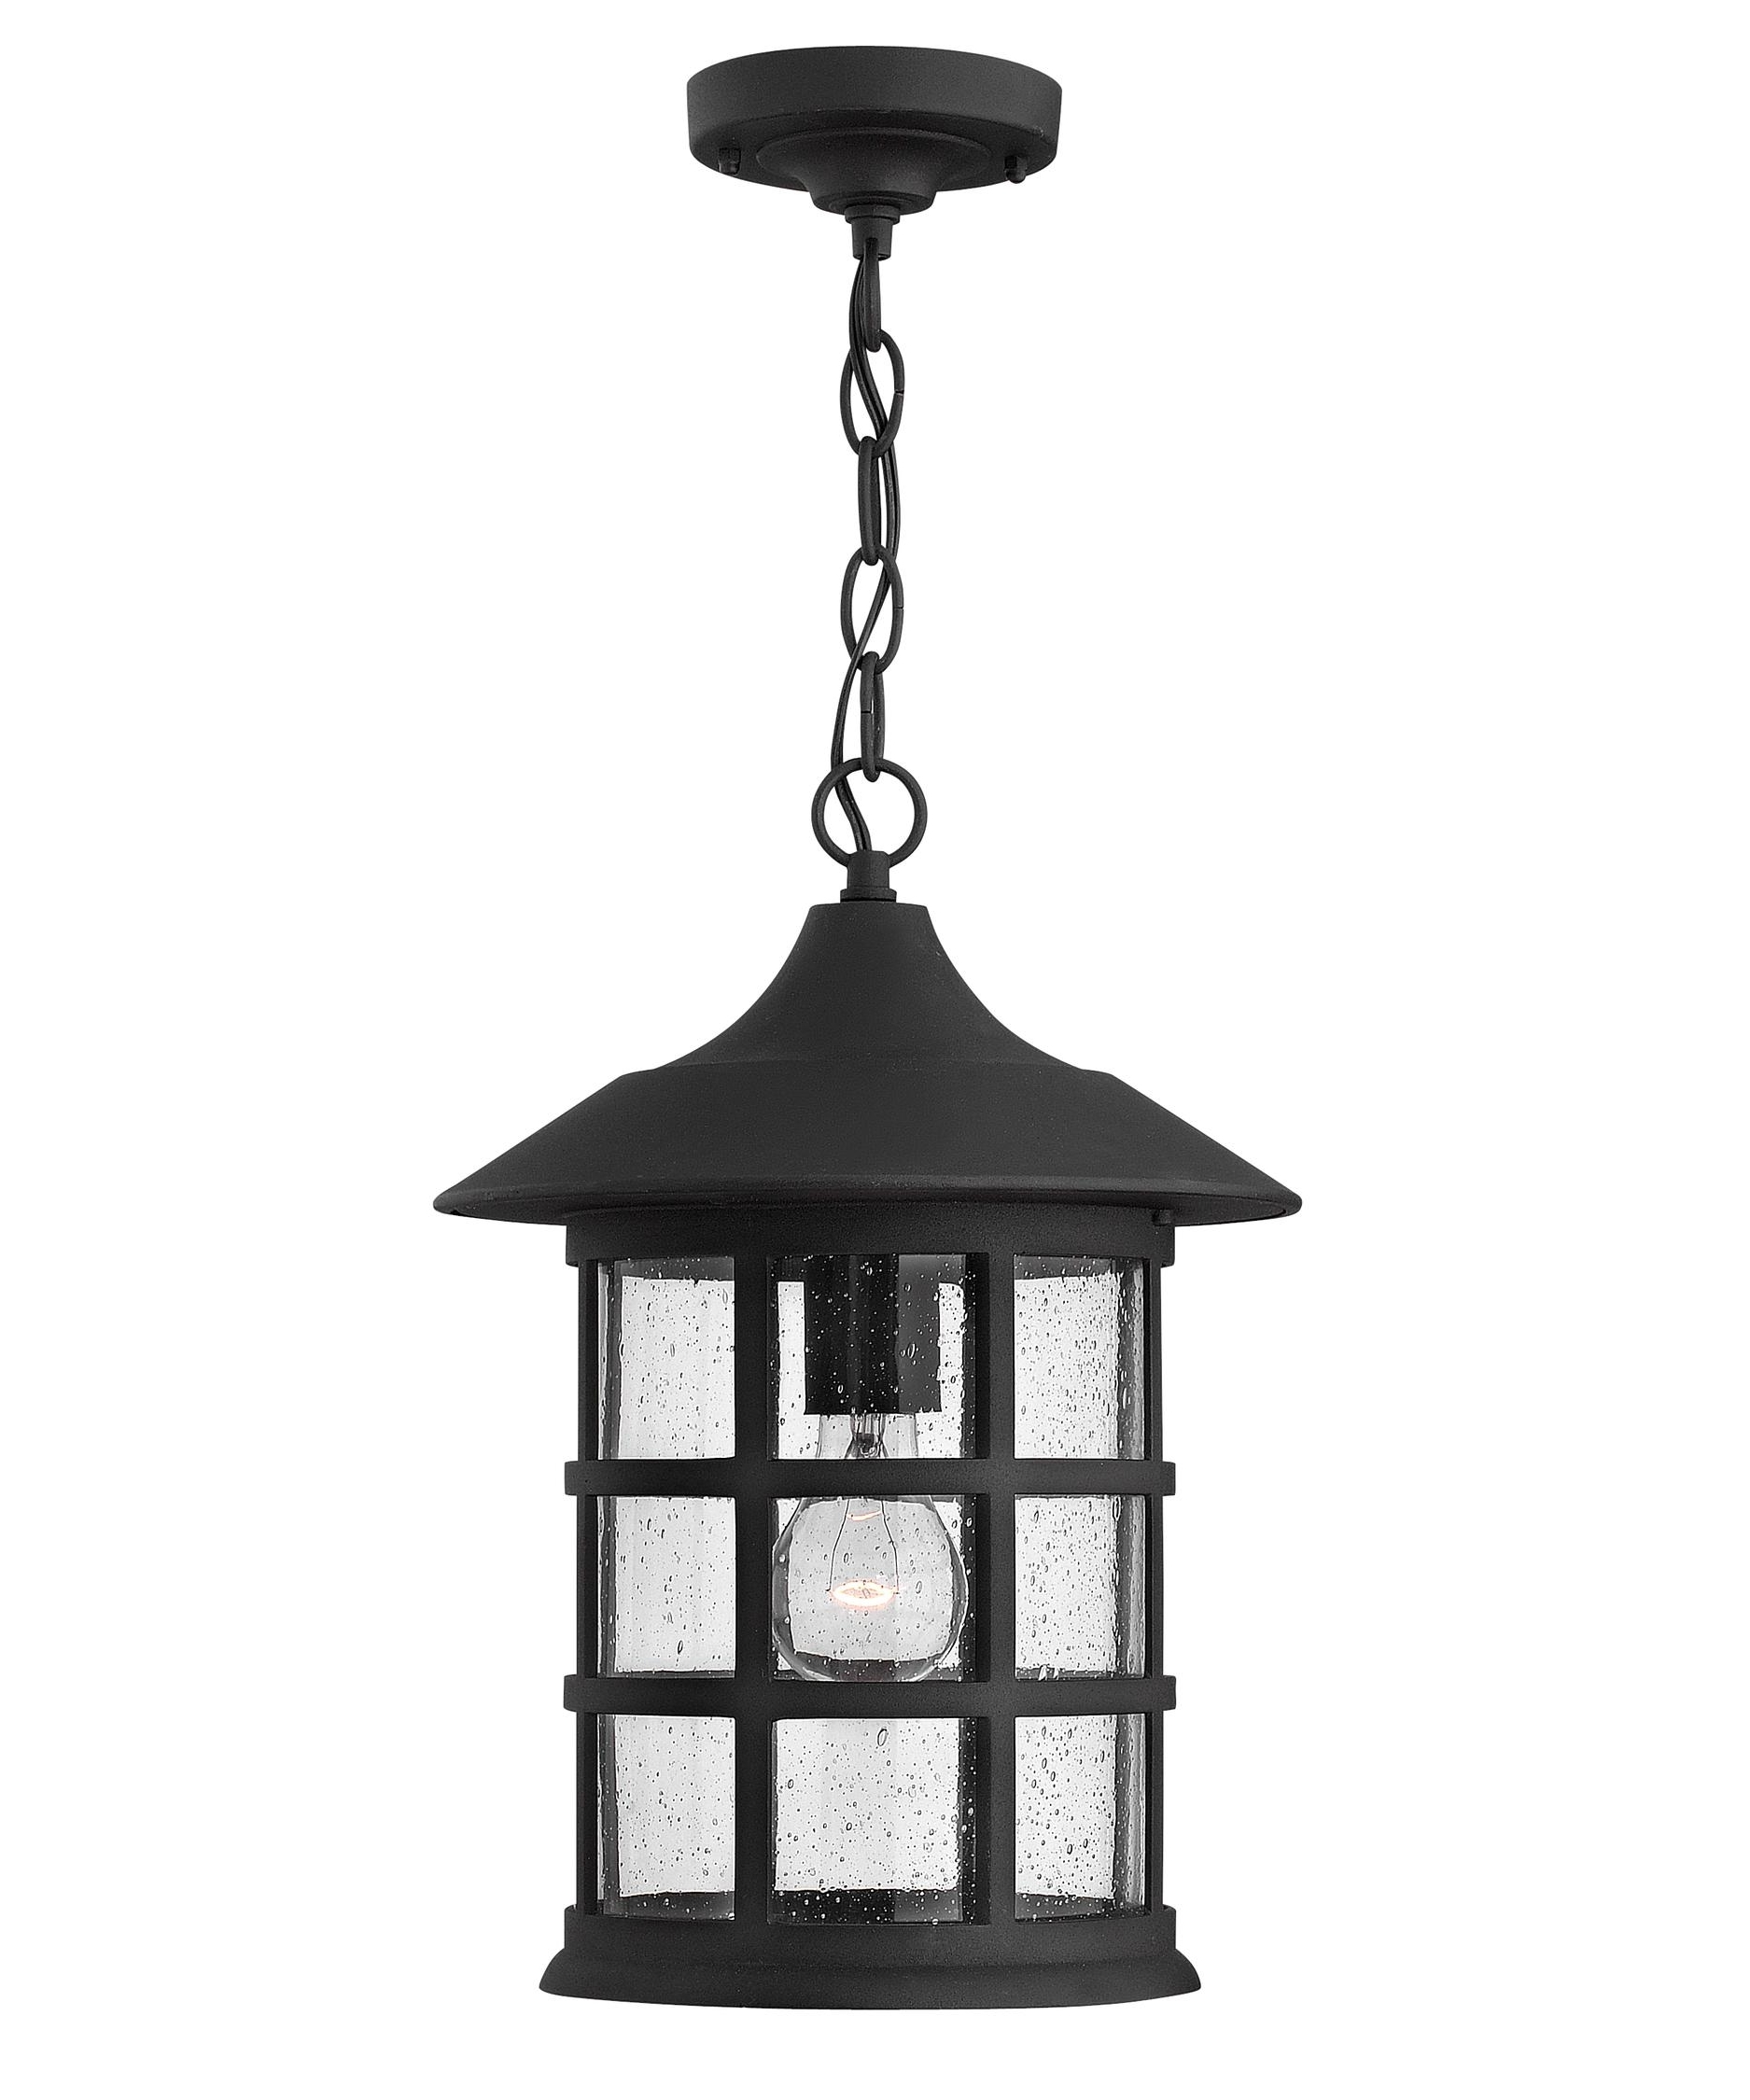 Hinkley Lighting 1802 Freeport 10 Inch Wide 1 Light Outdoor Hanging Inside Favorite Hinkley Outdoor Hanging Lights (View 5 of 20)